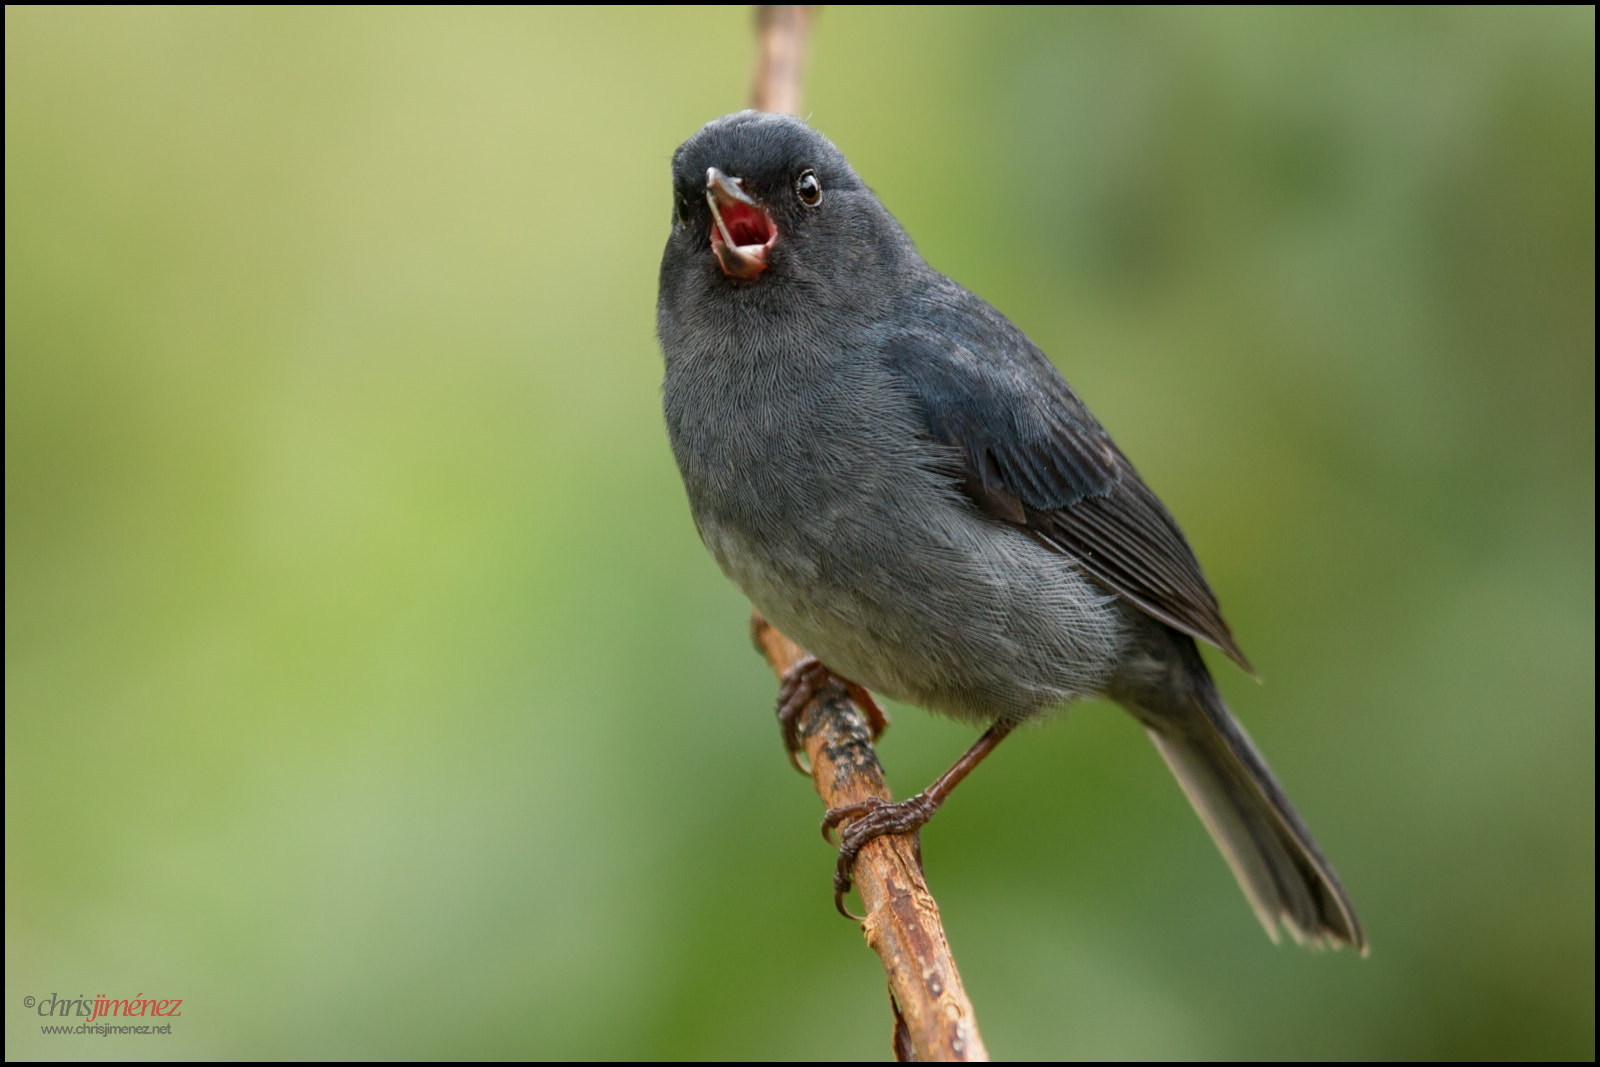 Photograph Slaty Flowerpiercer by Chris Jimenez on 500px